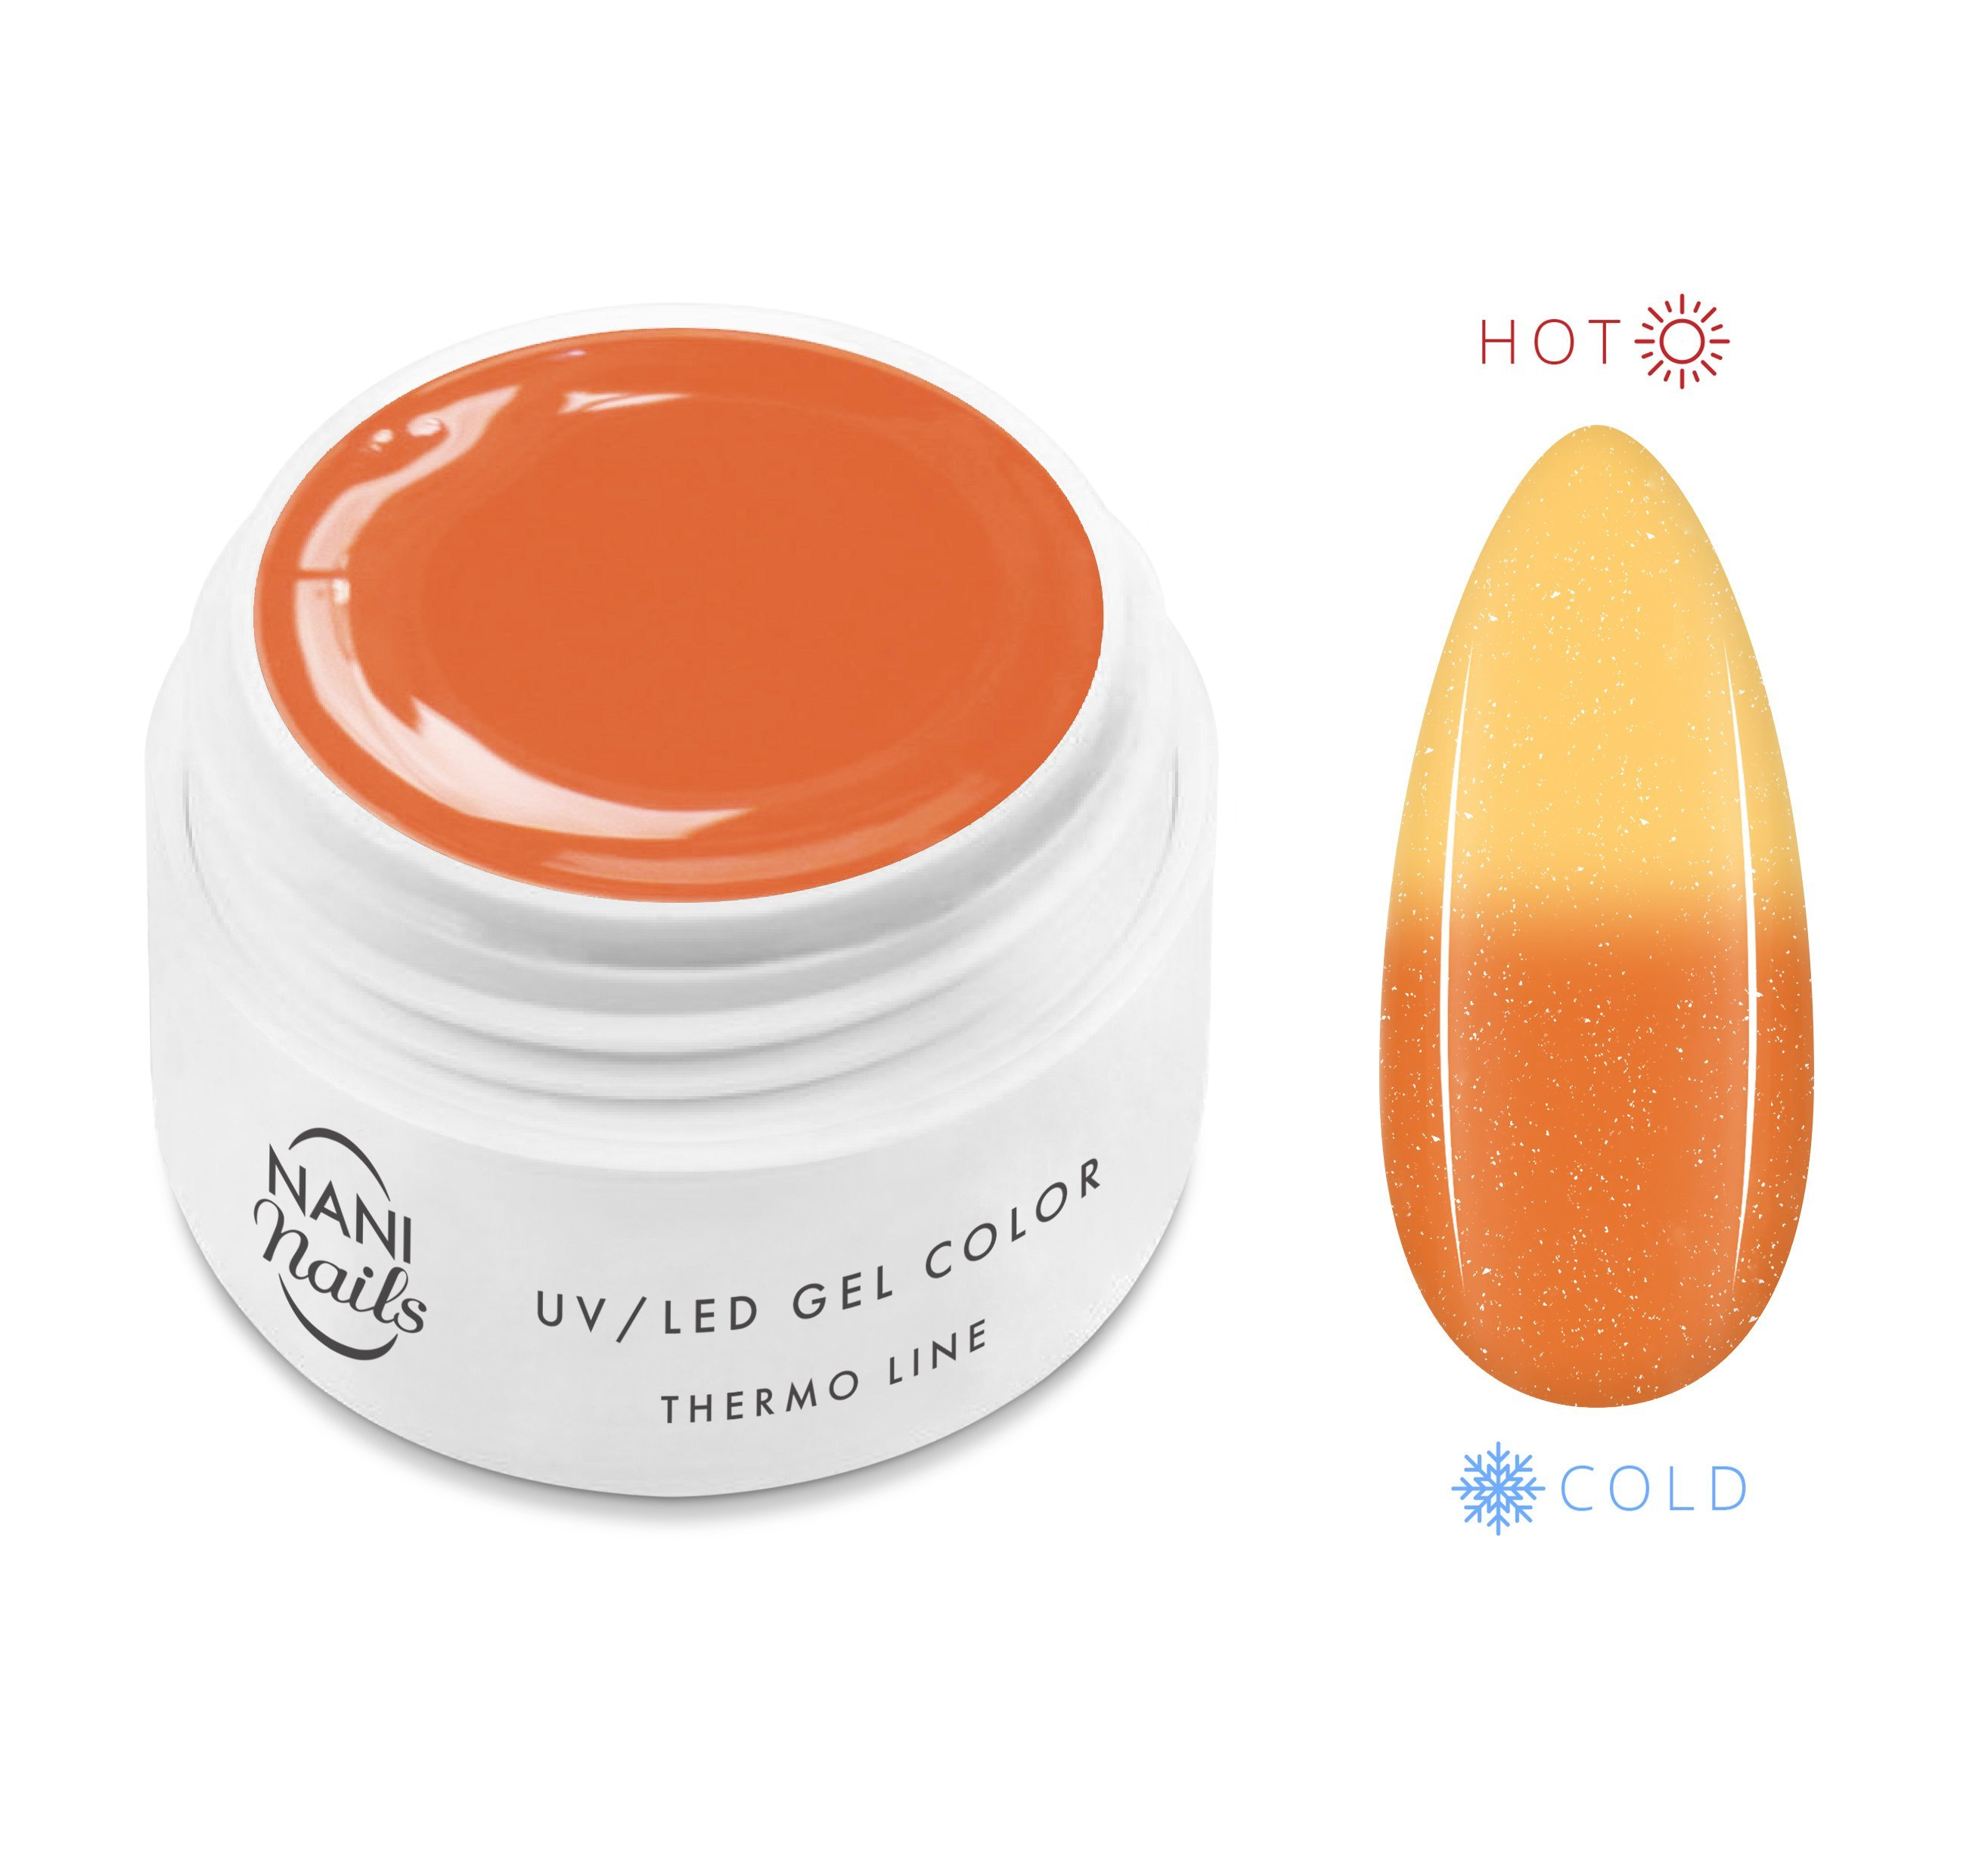 NANI termo UV gél 5 ml - Orange Yellow Glitter